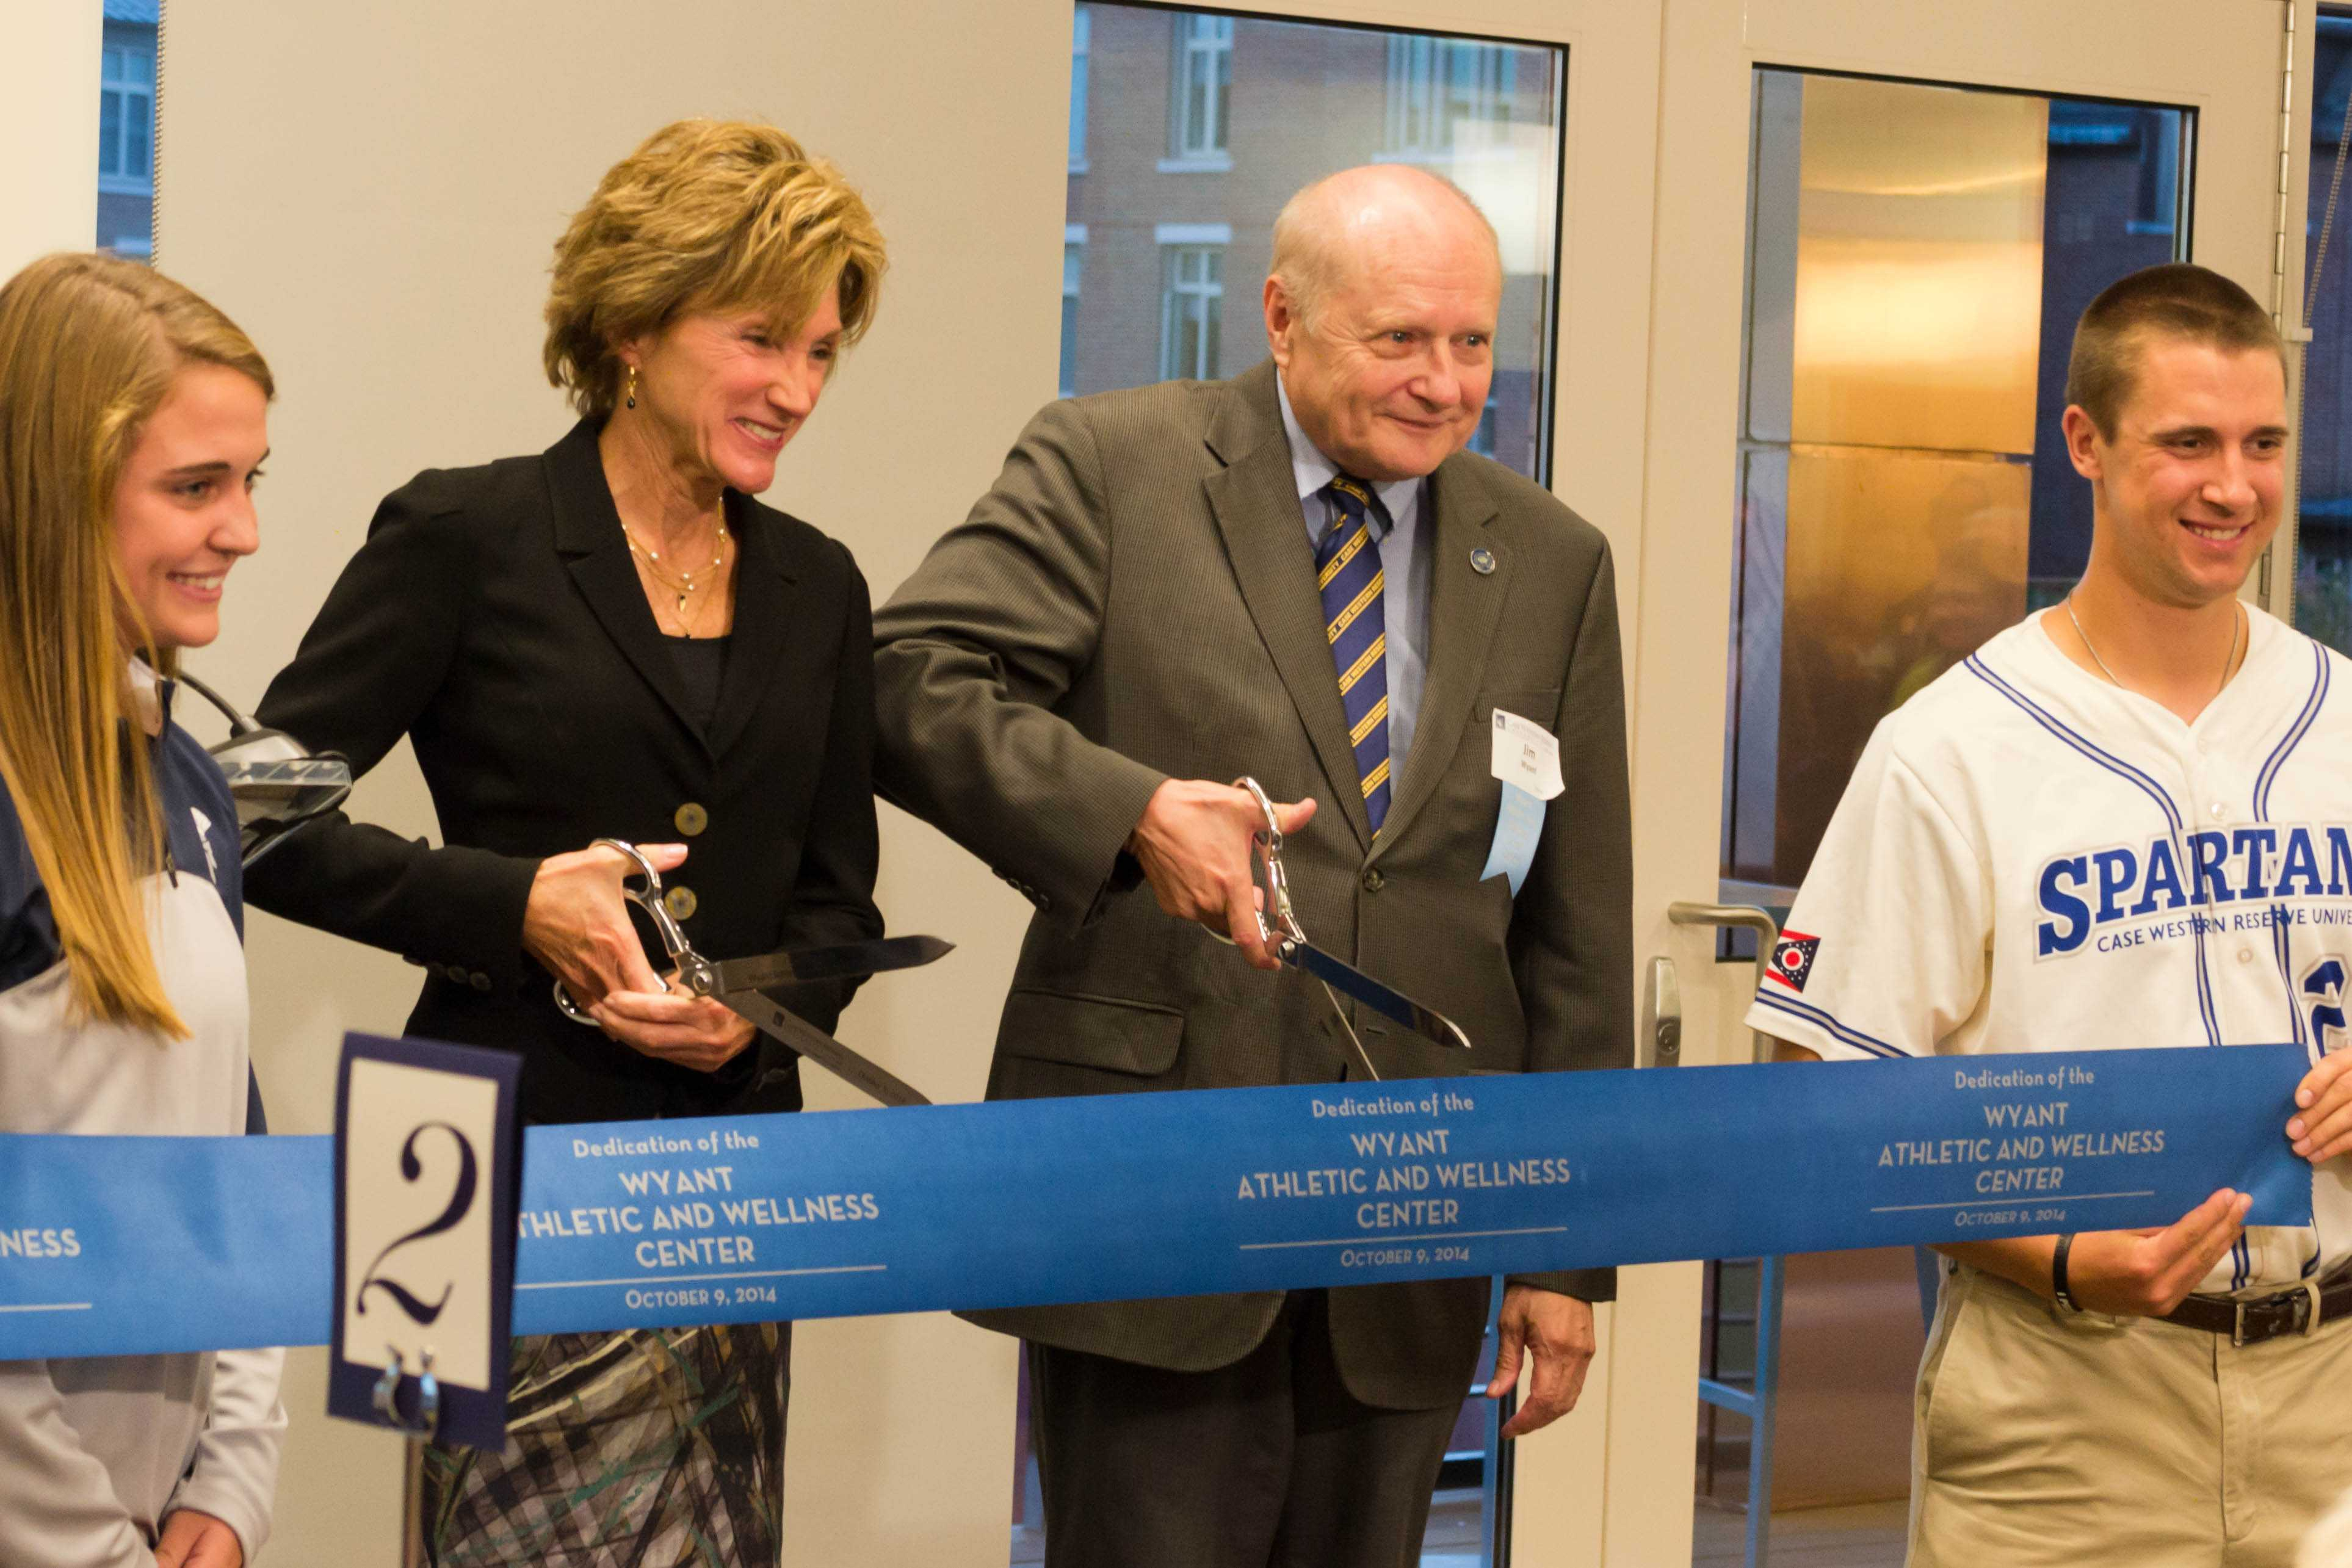 President Barbara R. Snyder and building namesake and major donor Dr. James Wyant, a Case Institute of Technology alumnus cut the ribbon dedicating the new Wyant Athletic and Wellness Center.